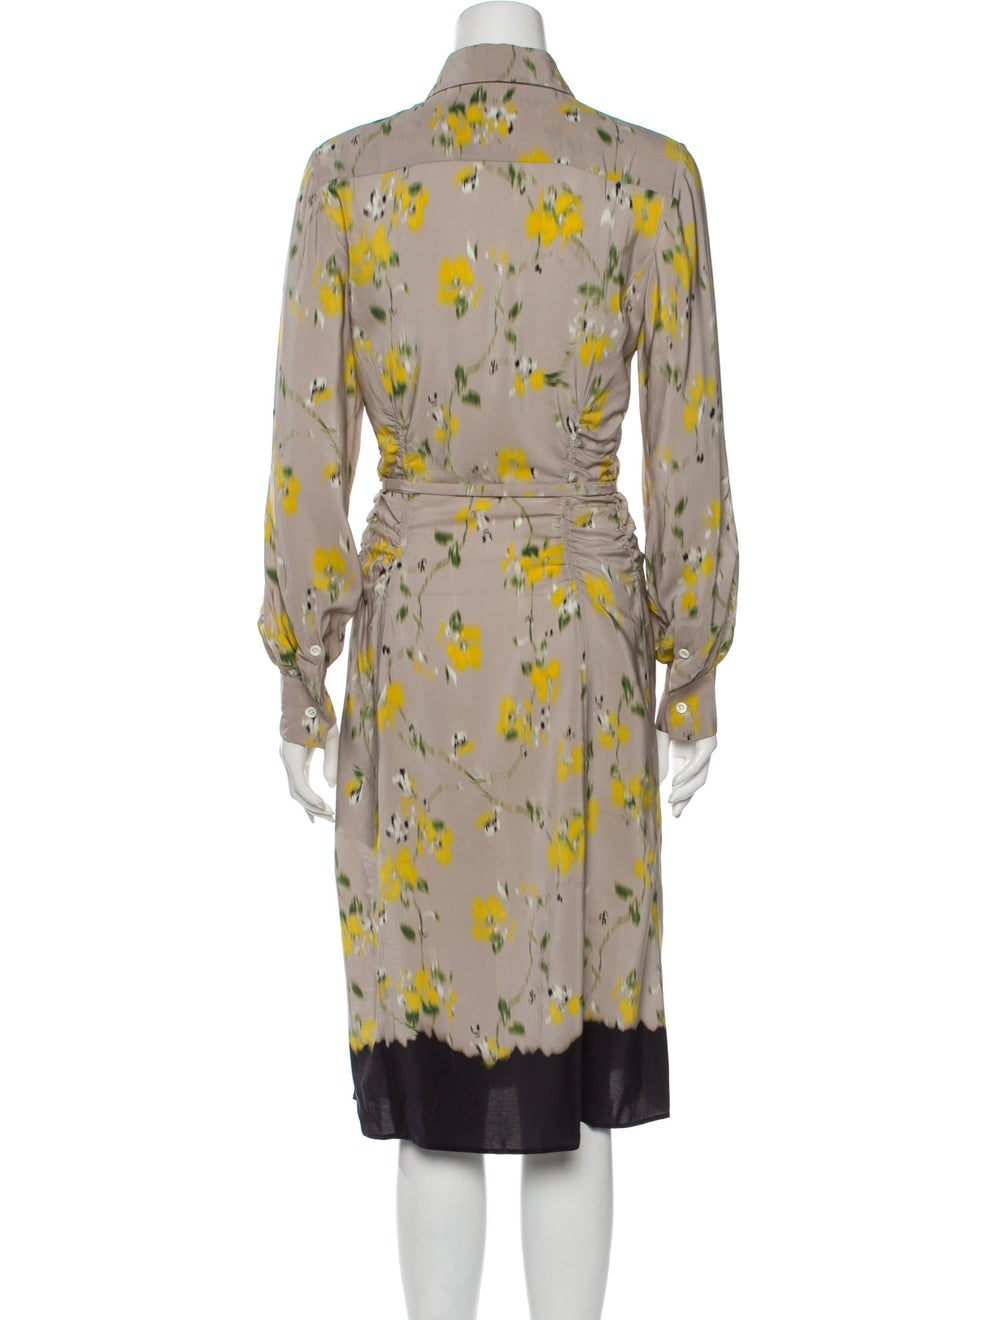 Altuzarra Silk Midi Length Dress - image 3